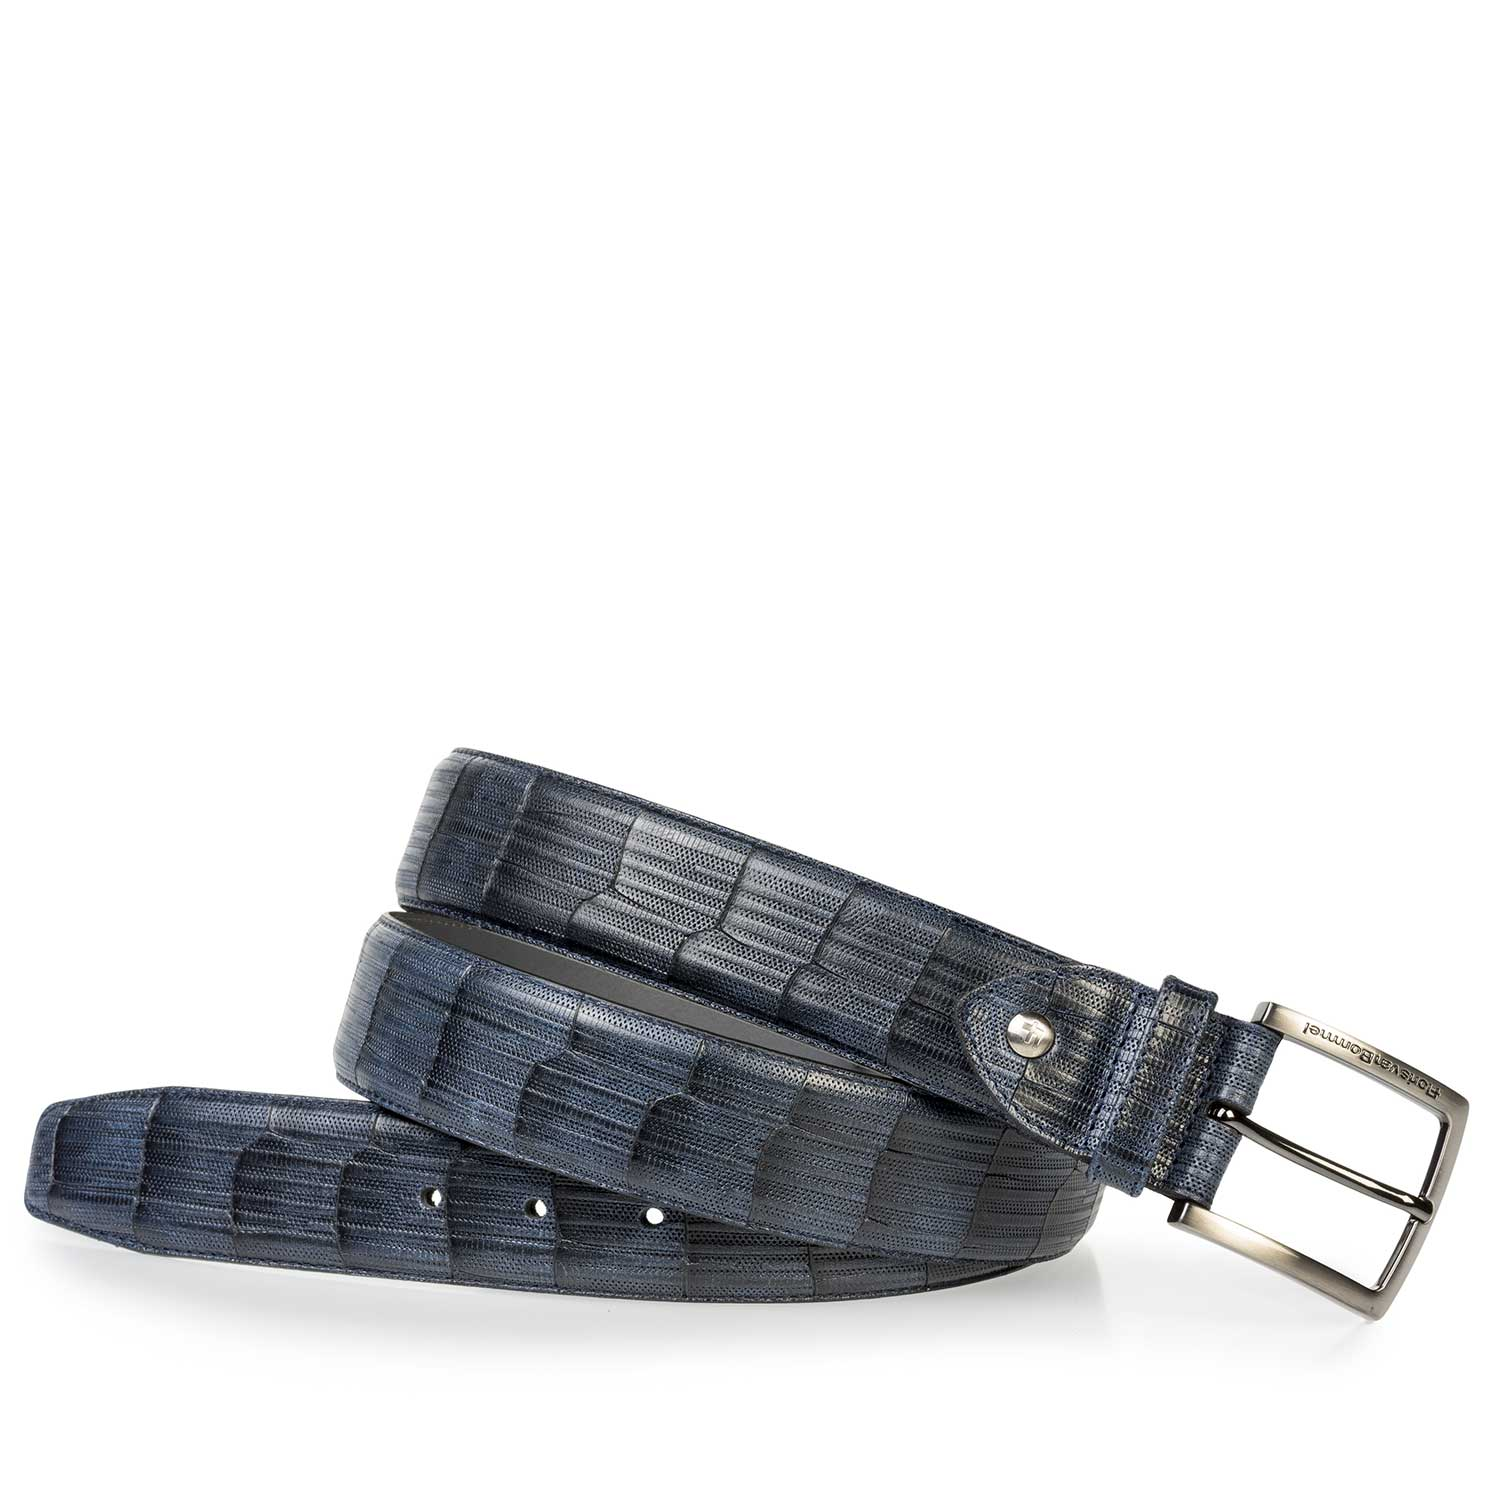 75202/40 - Dark blue leather belt with print